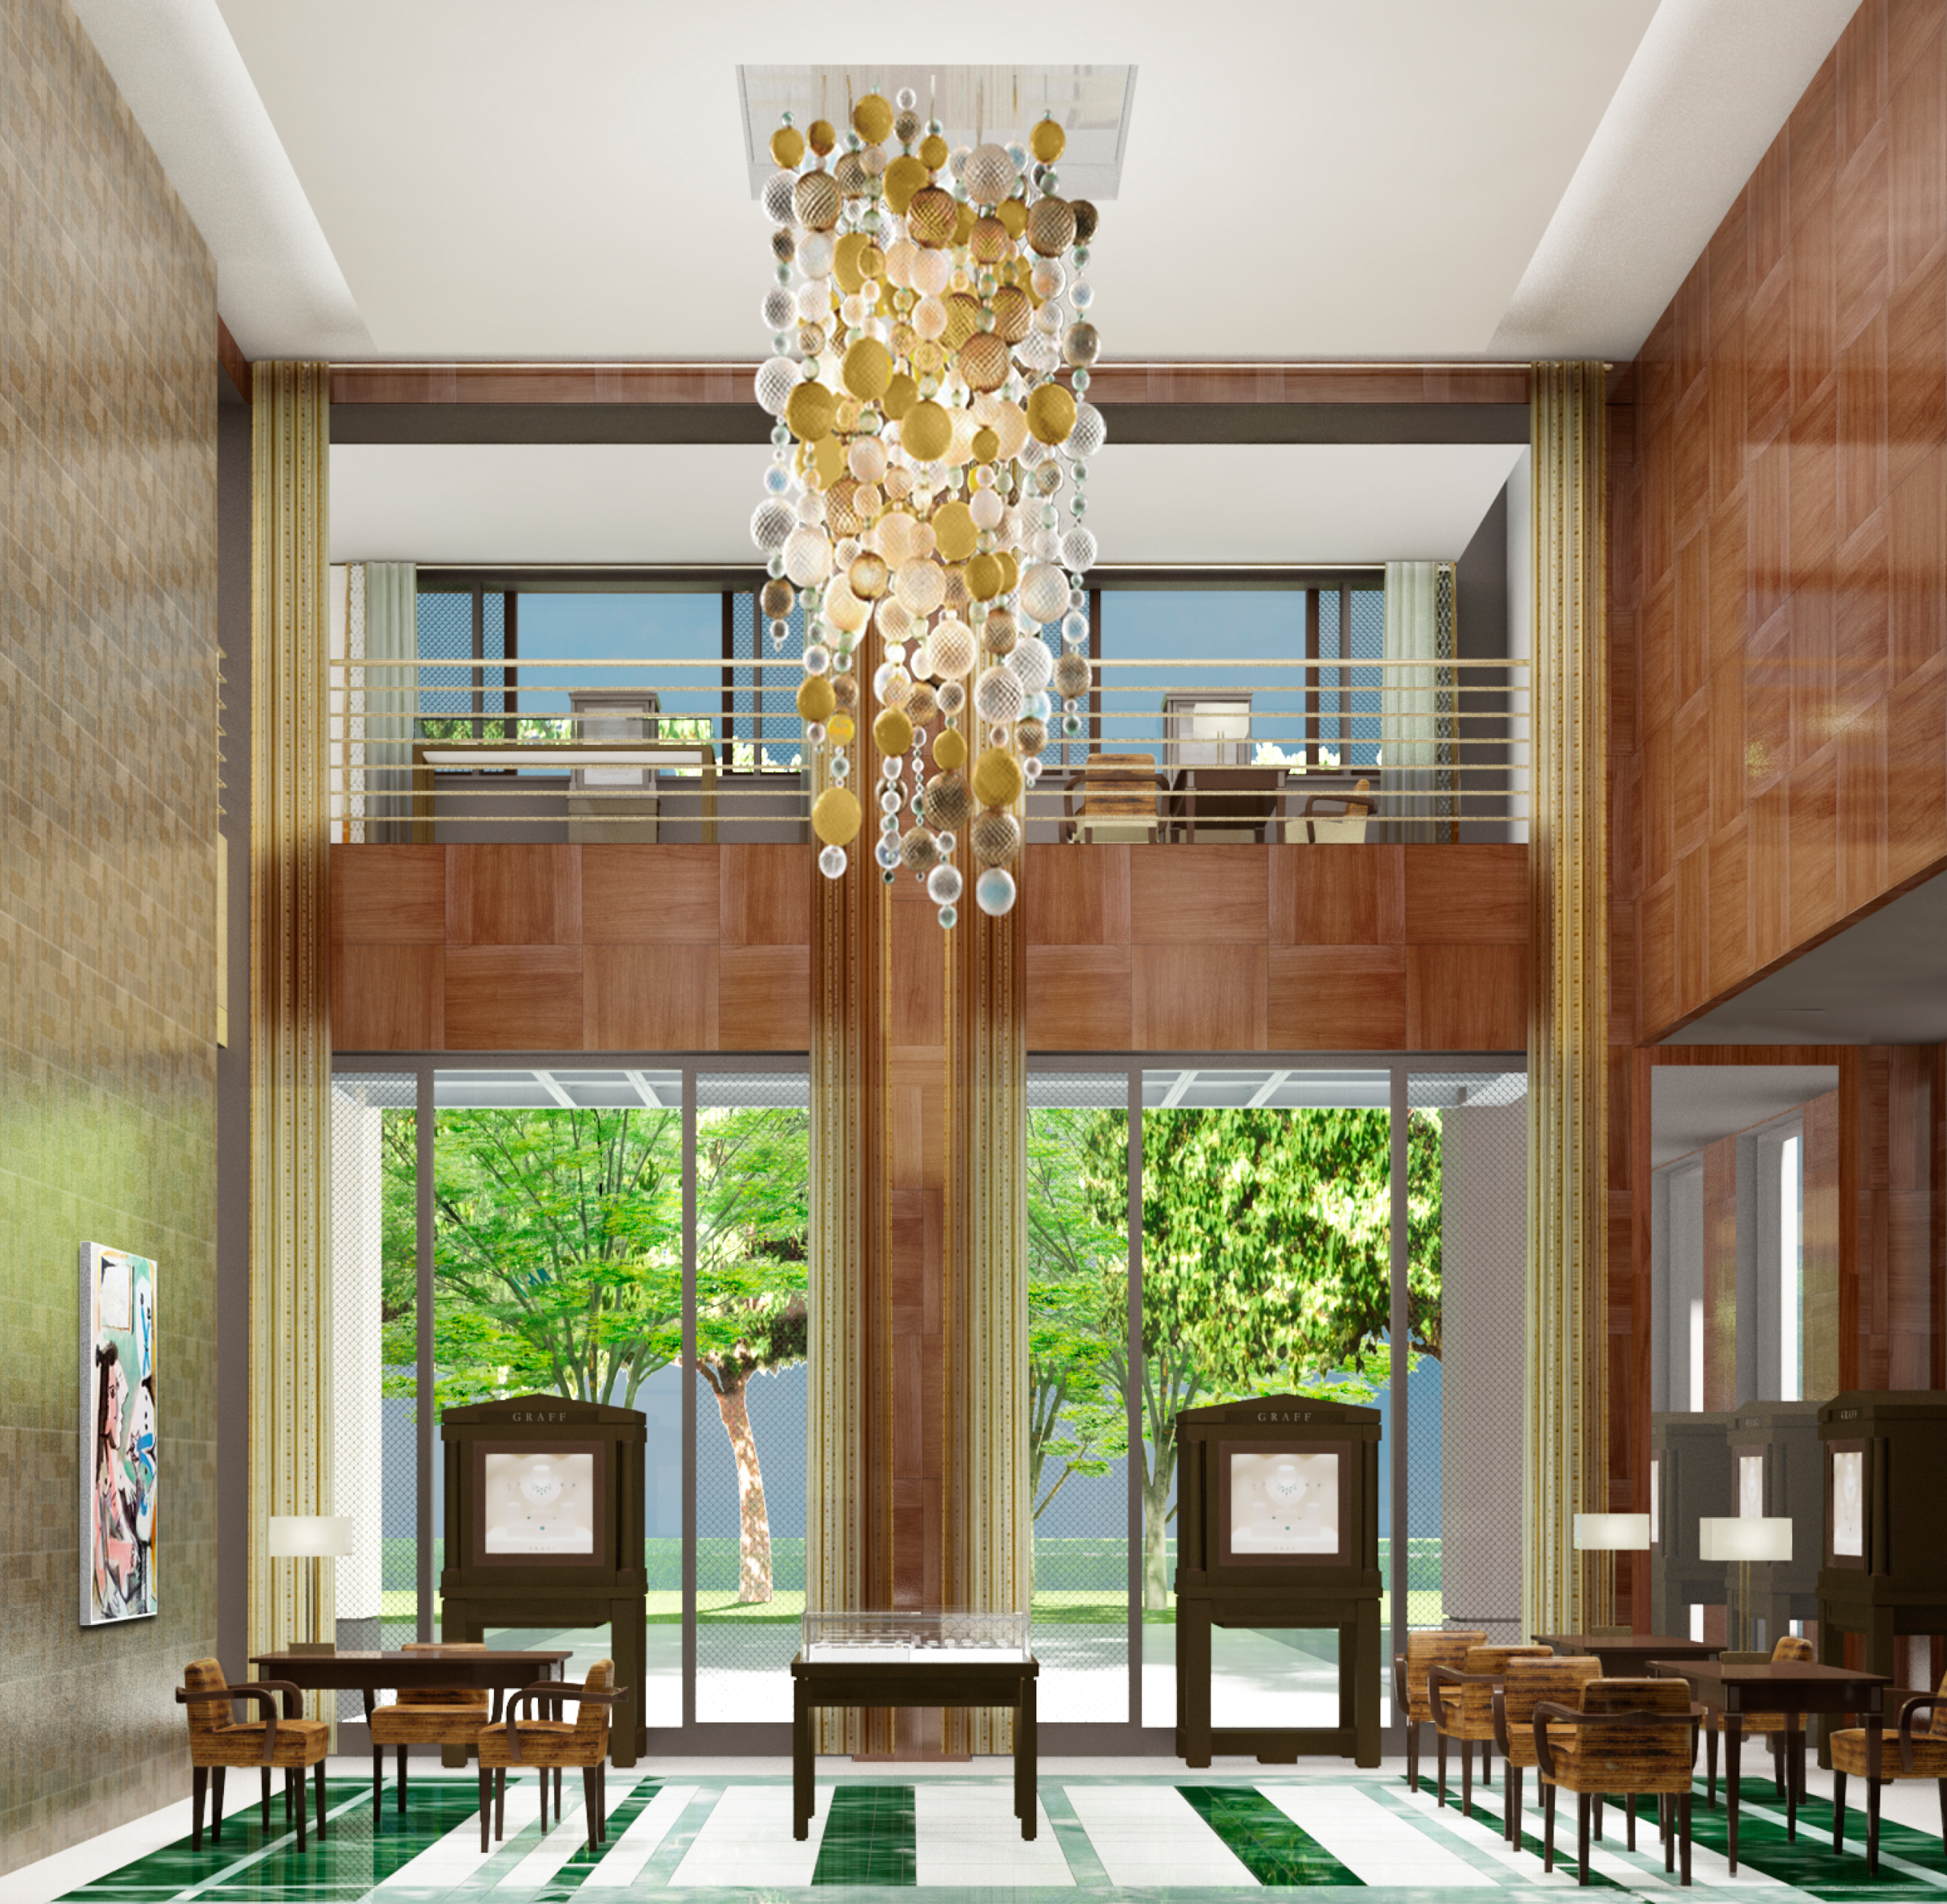 3182 Graff Hangzhou - Interior Renderings 120410.jpg